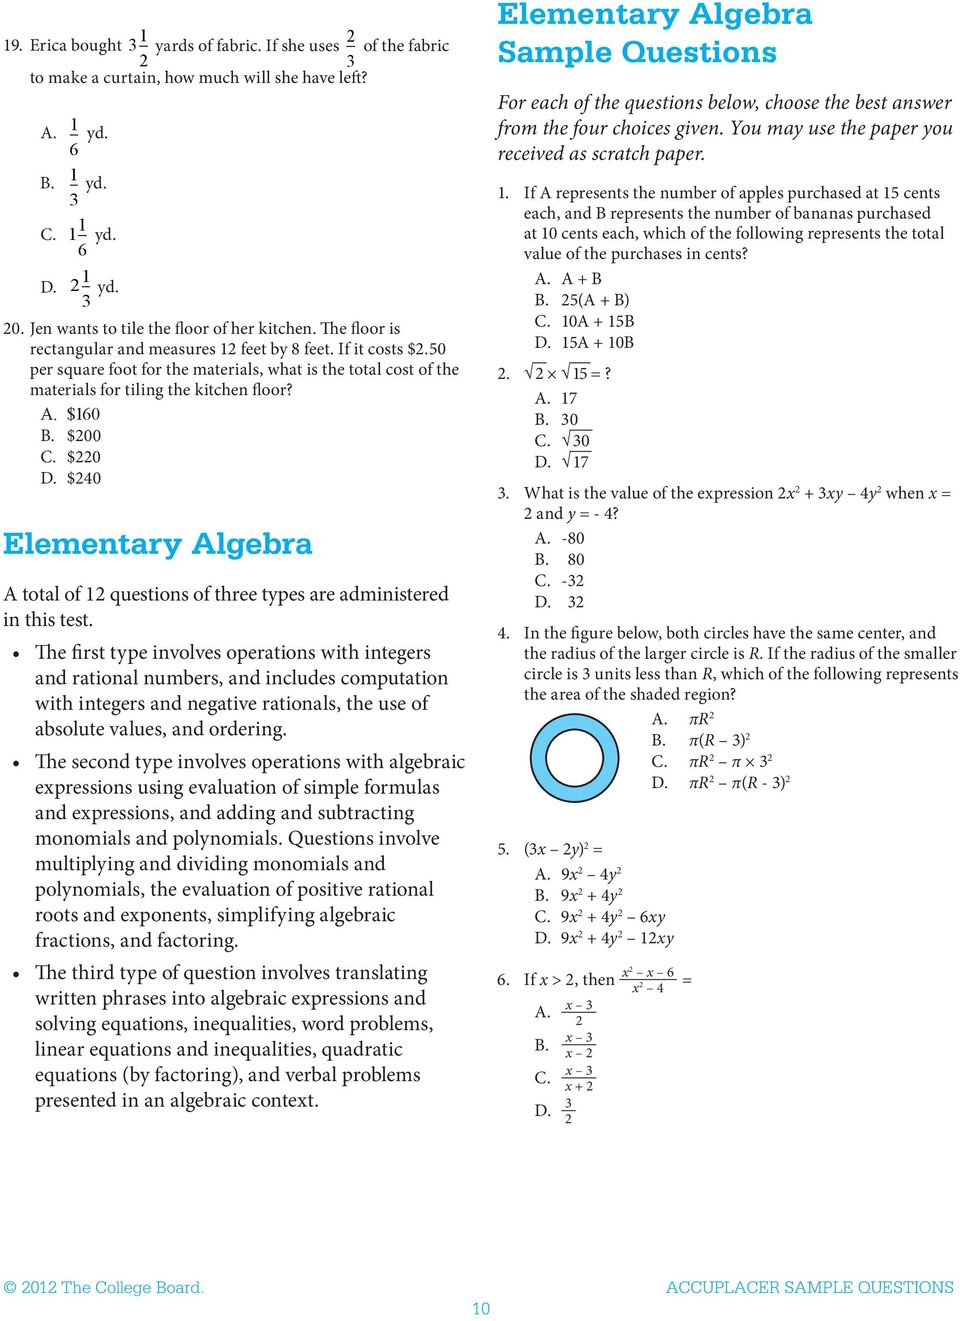 $40 Elementary Algebra A total of questions of three types are administered in this test.